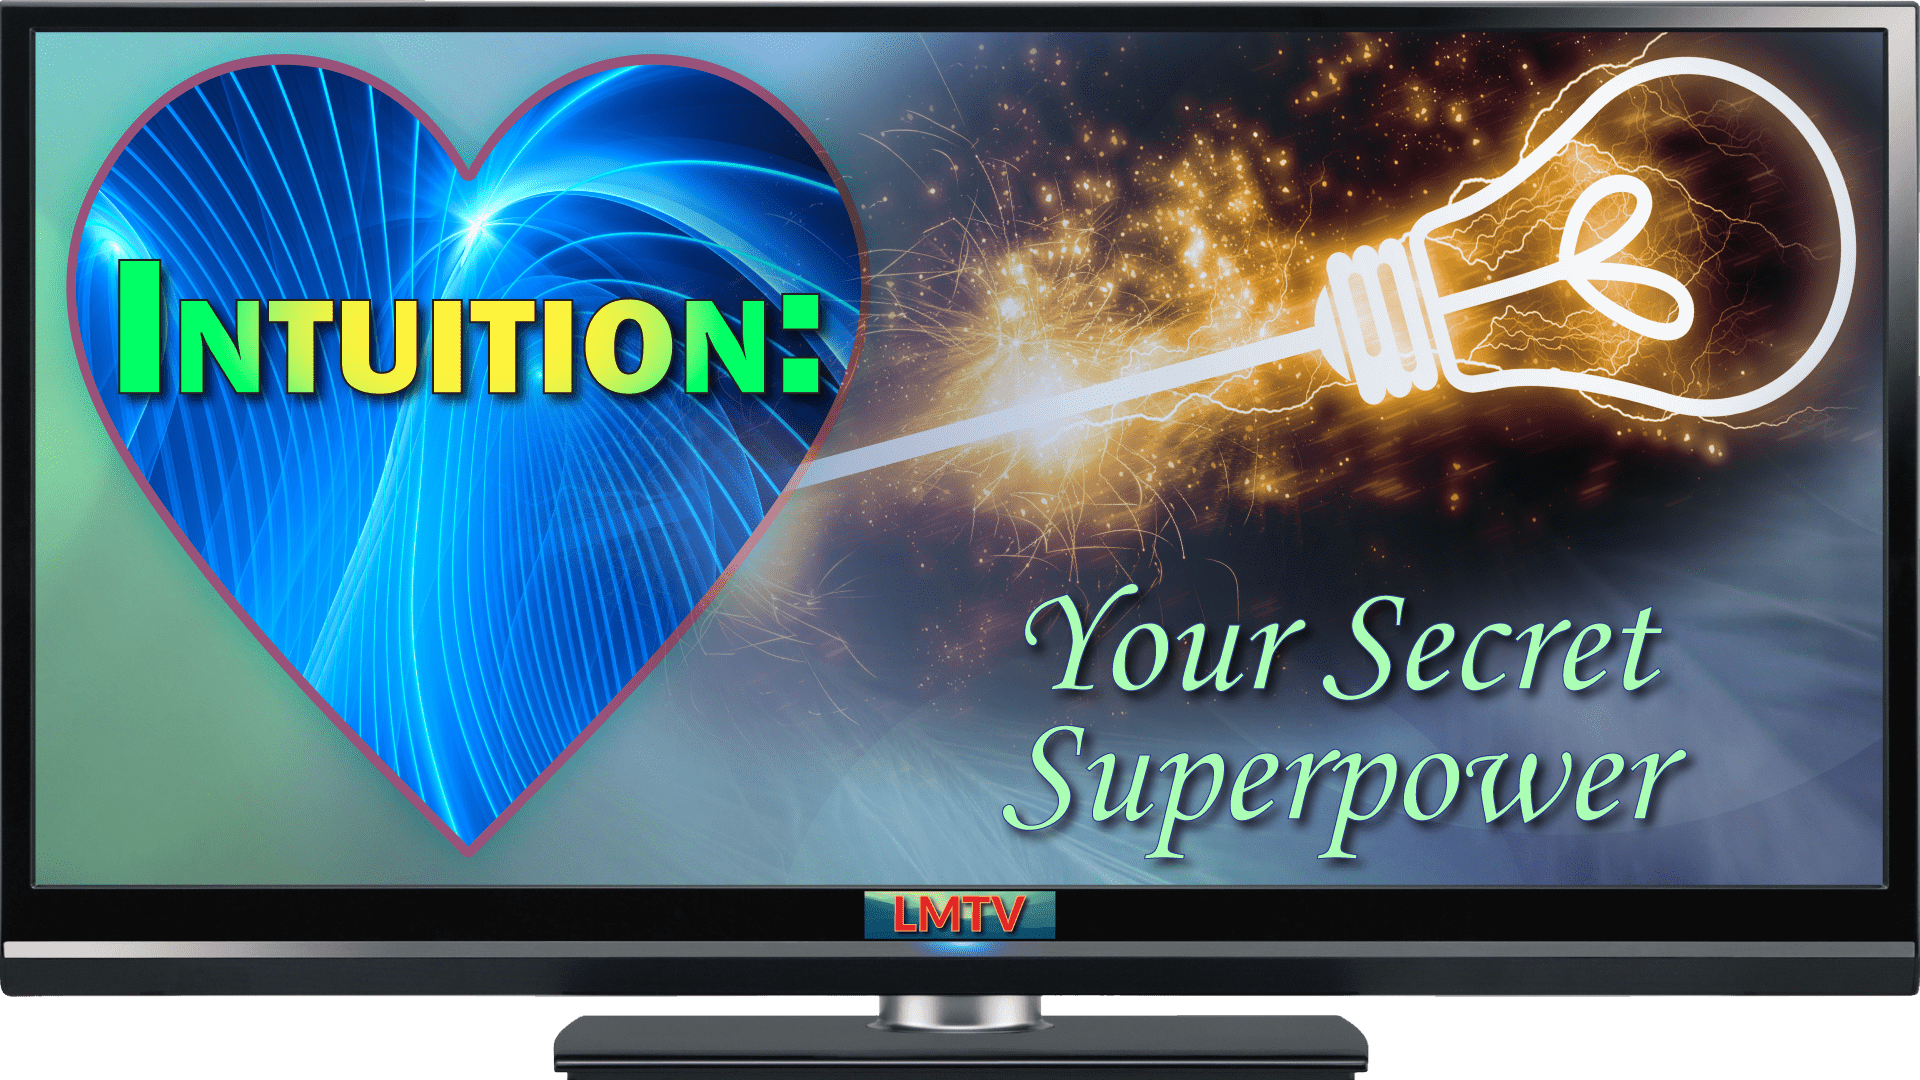 Intuition Your Secret Superpower